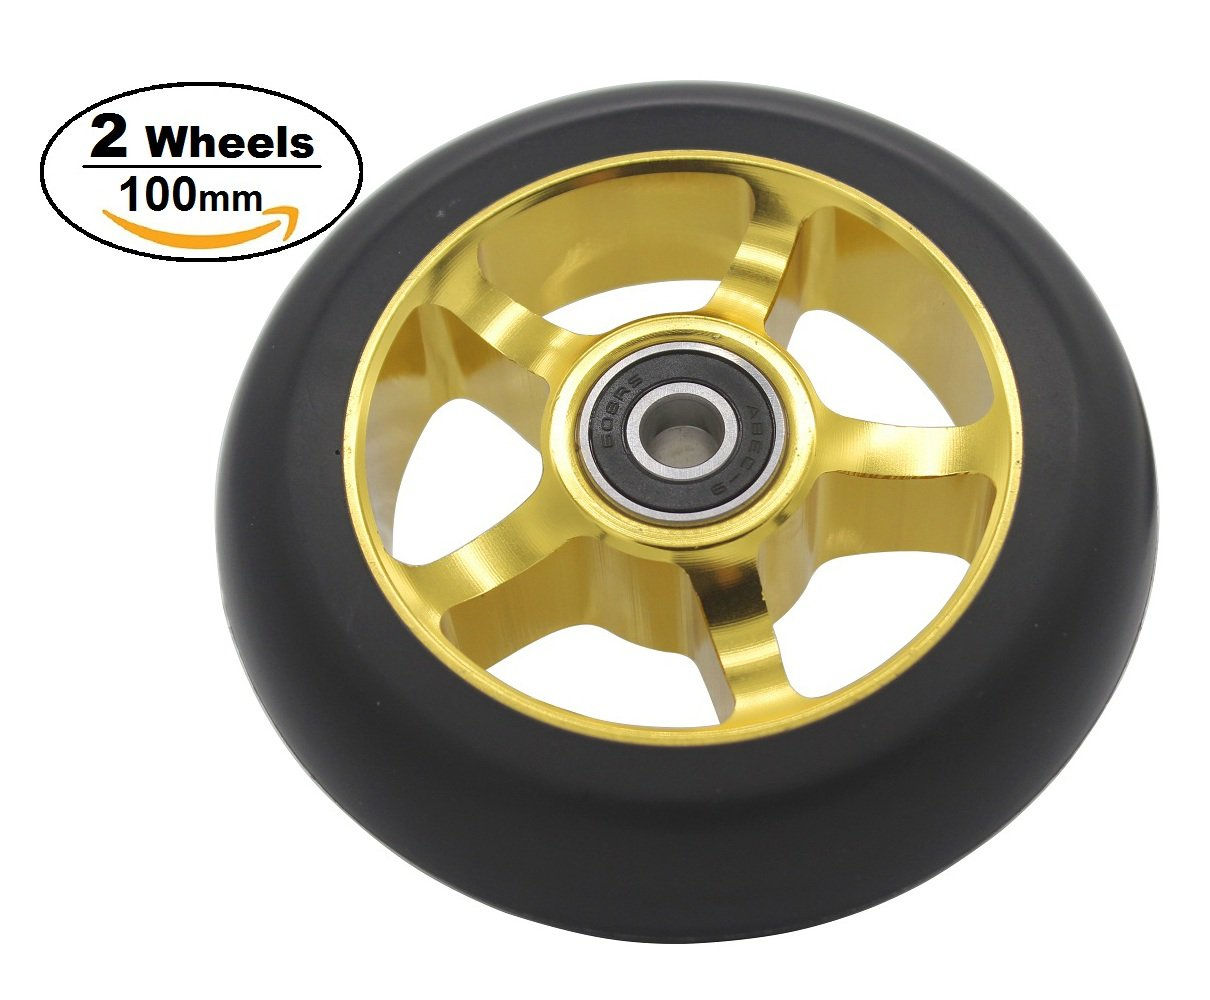 2Pcs Replacement 100 mm Pro Stunt Scooter Wheel with ABEC 9 Bearings Fit for MGP//Razor//Lucky Pro Scooters